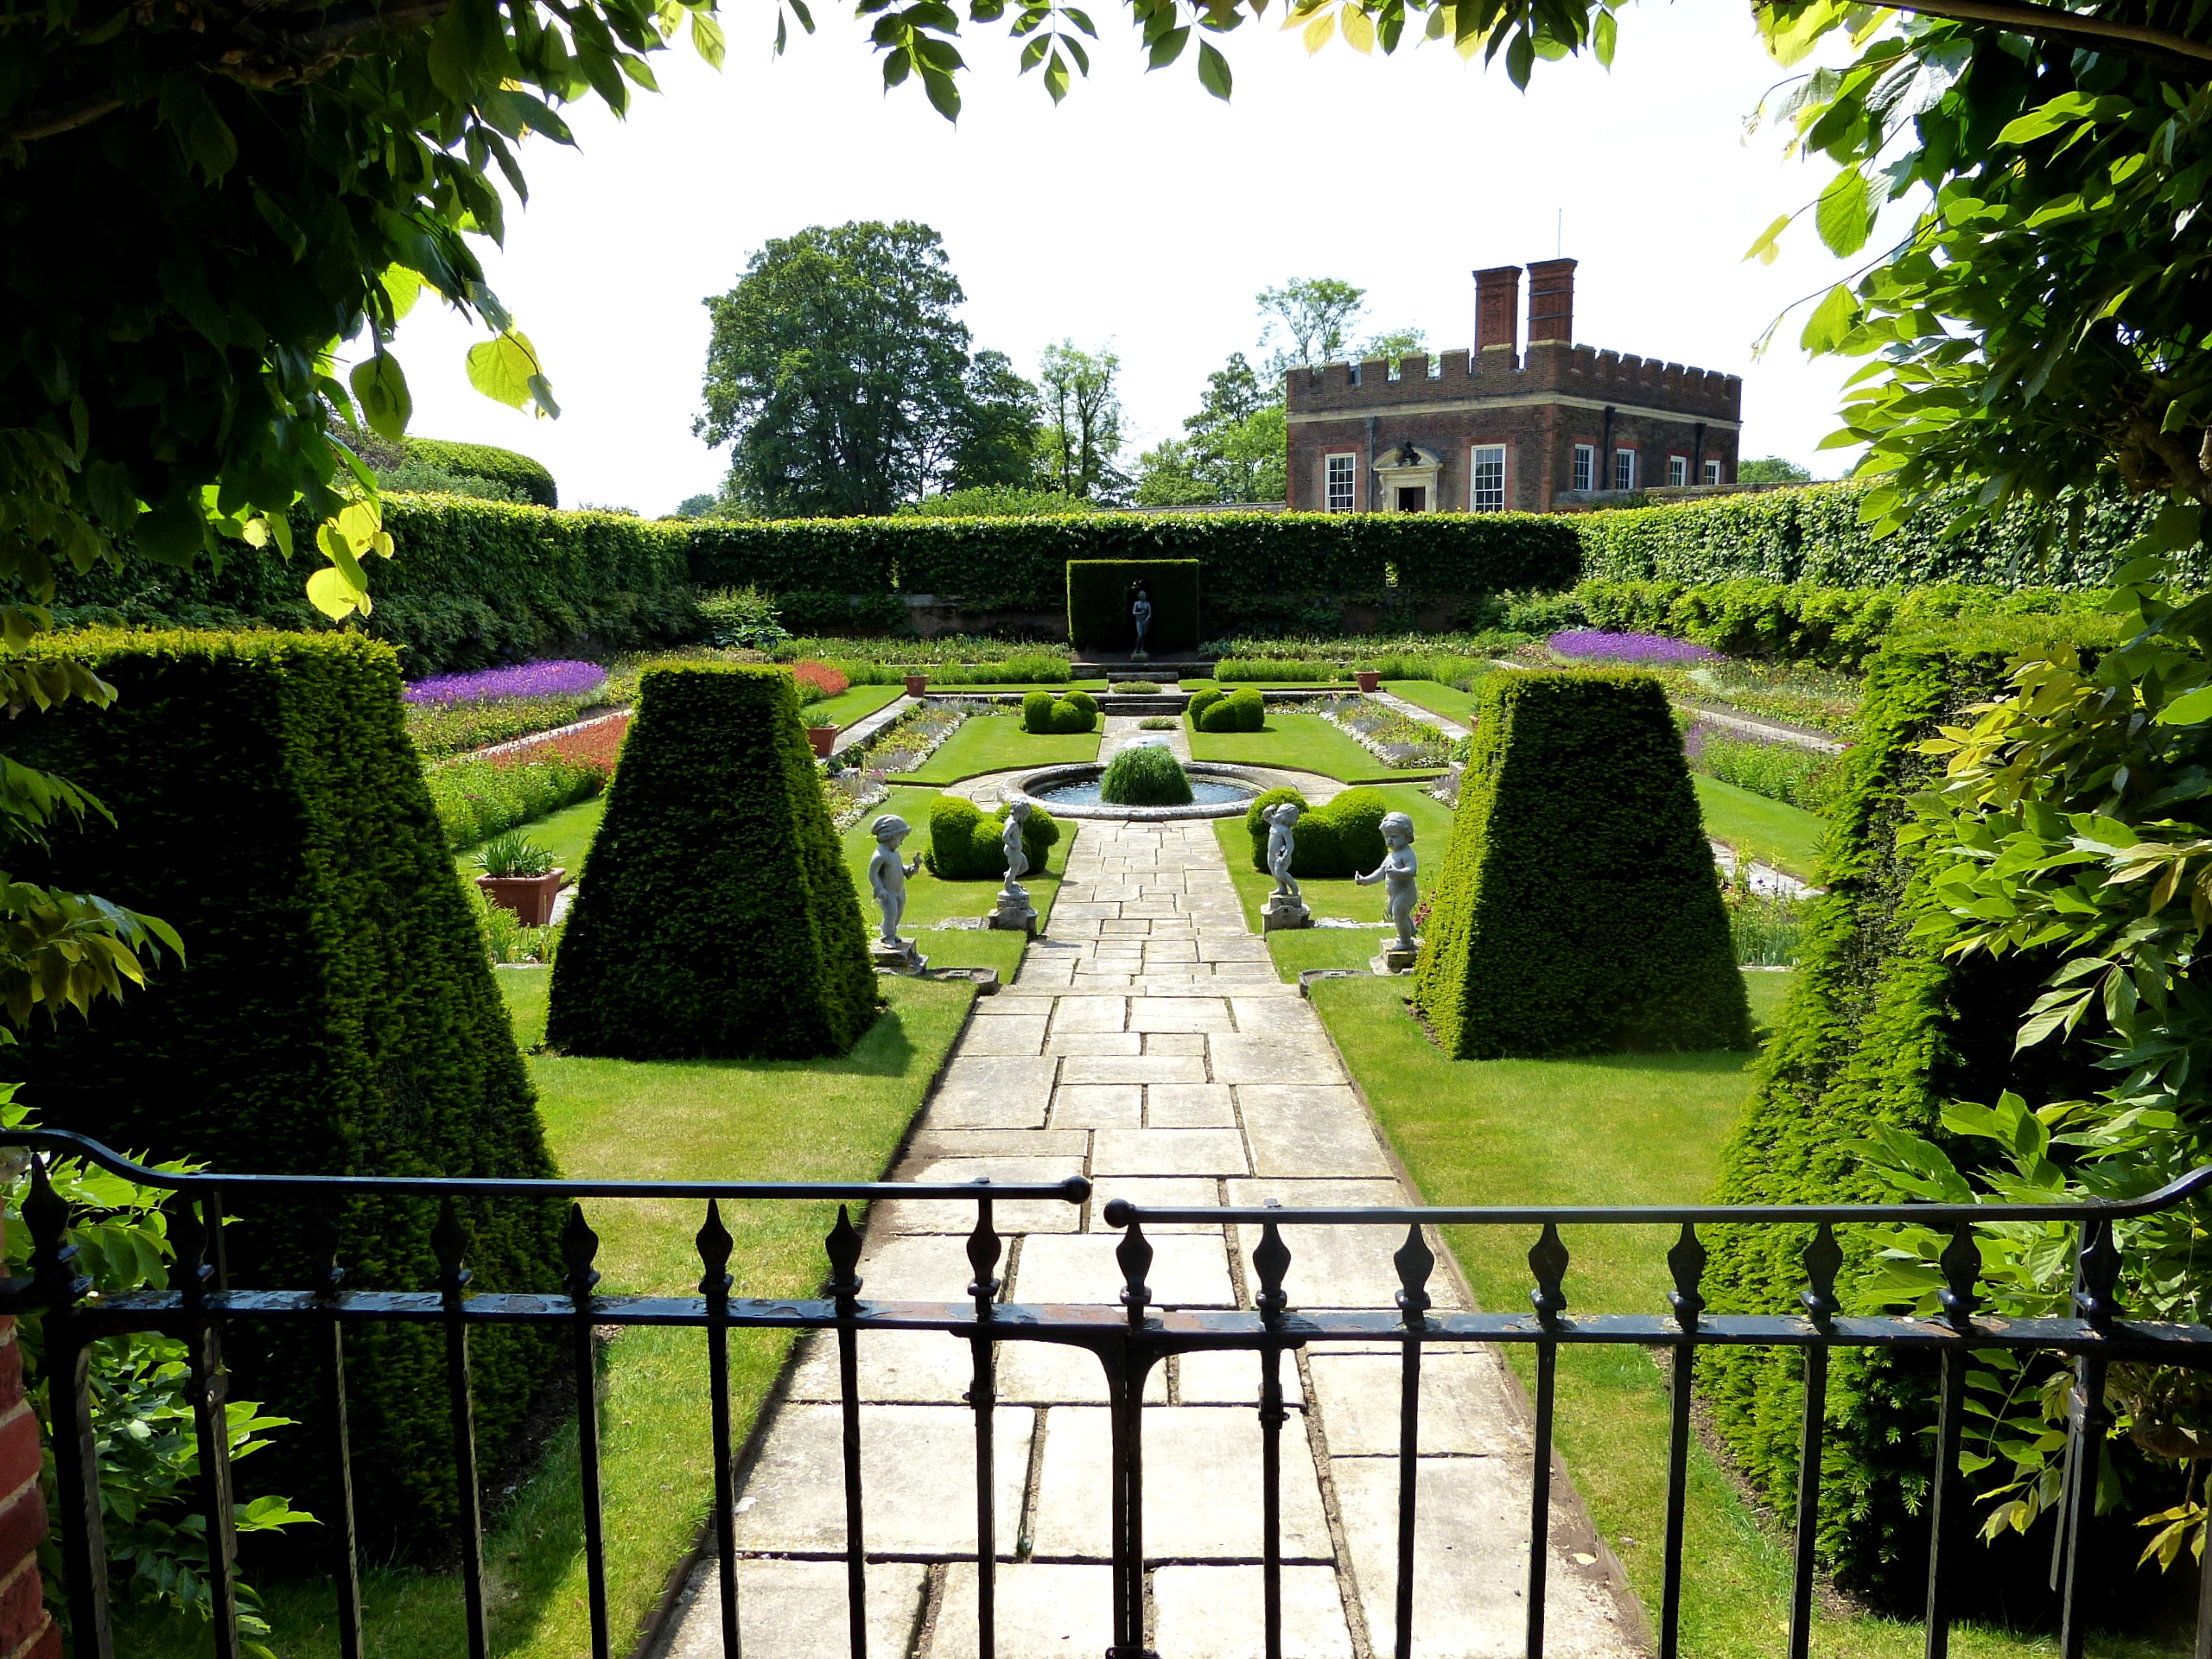 Pond Garden at Hampton Court Palace was once the site for fish farming ly a sit fora fish-farming pond